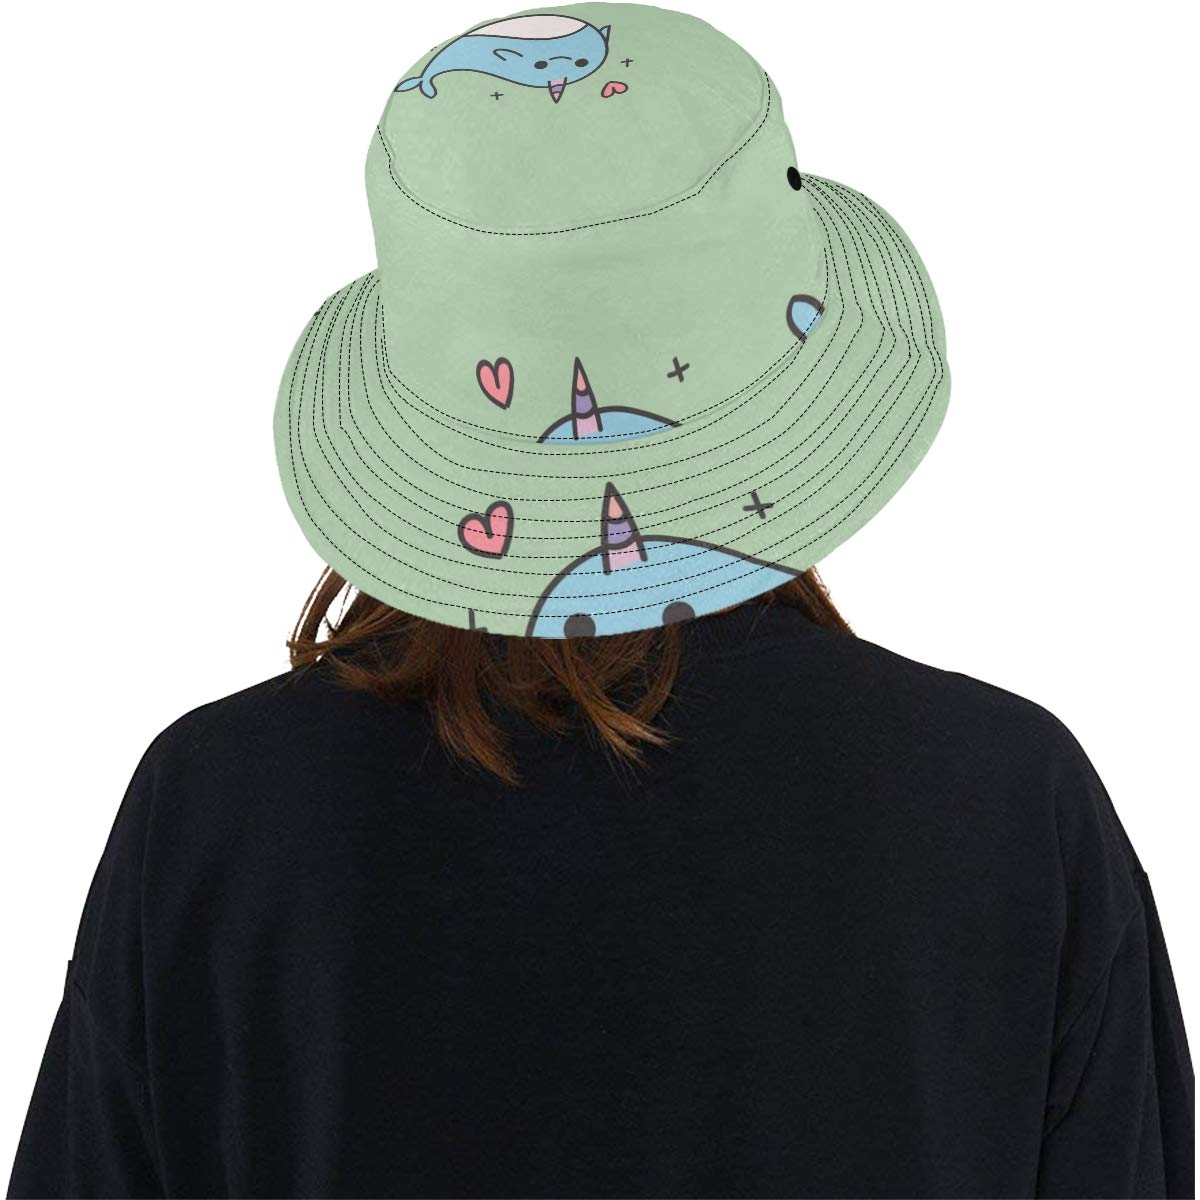 Lovely Smart Dolphoin New Summer Unisex Cotton Fashion Fishing Sun Bucket Hats for Kid Teens Women and Men with Customize Top Packable Fisherman Cap for Outdoor Travel